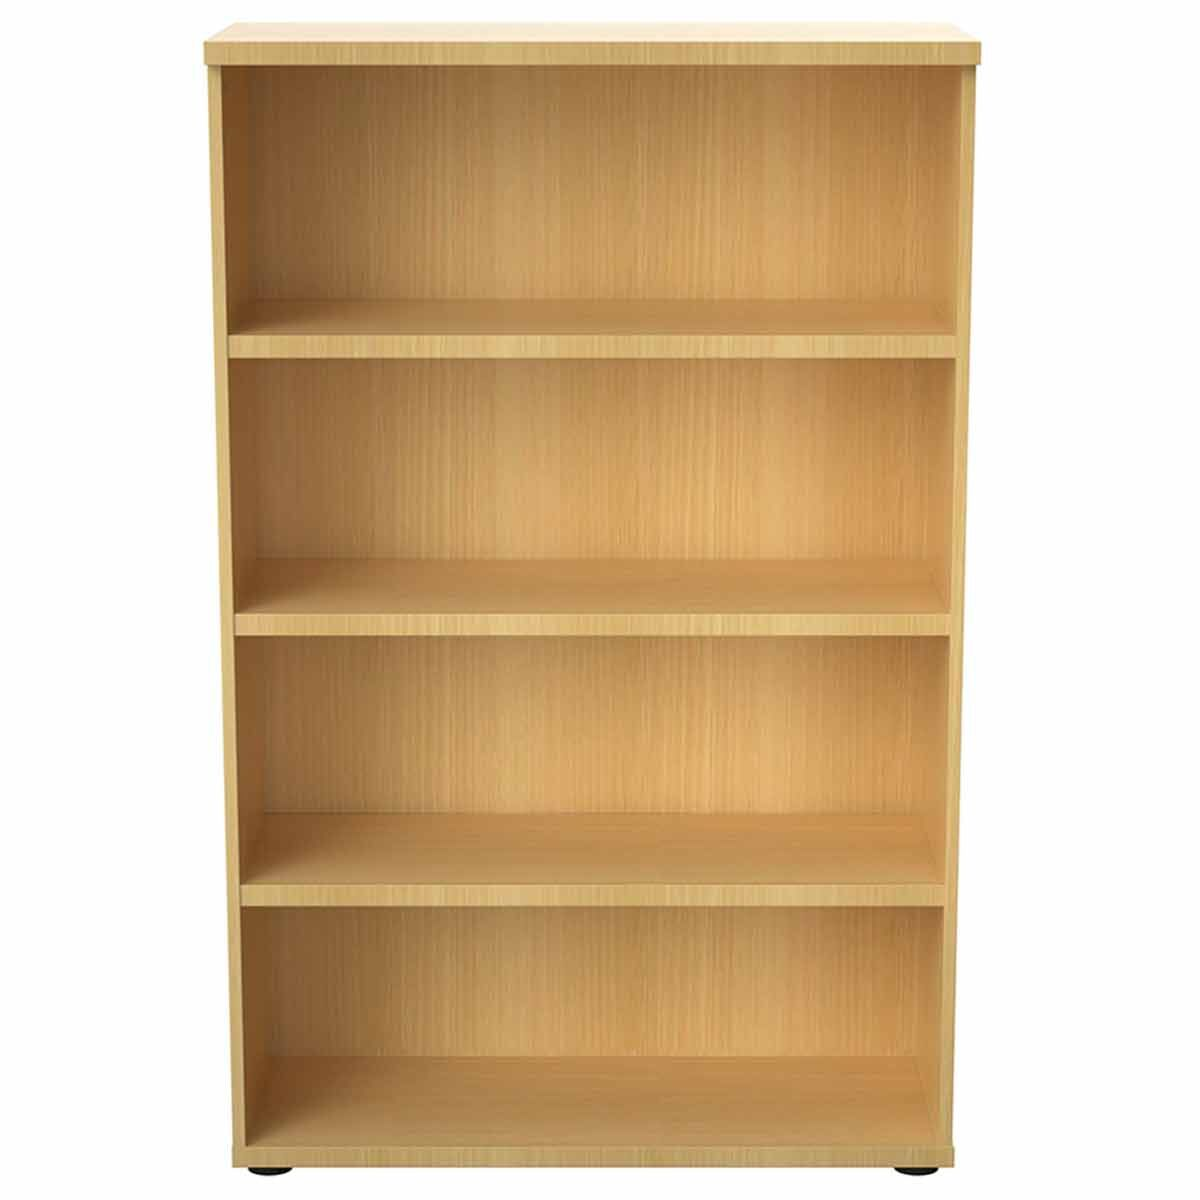 TC Office Regent Bookcase 3 Shelves Height 1600mm